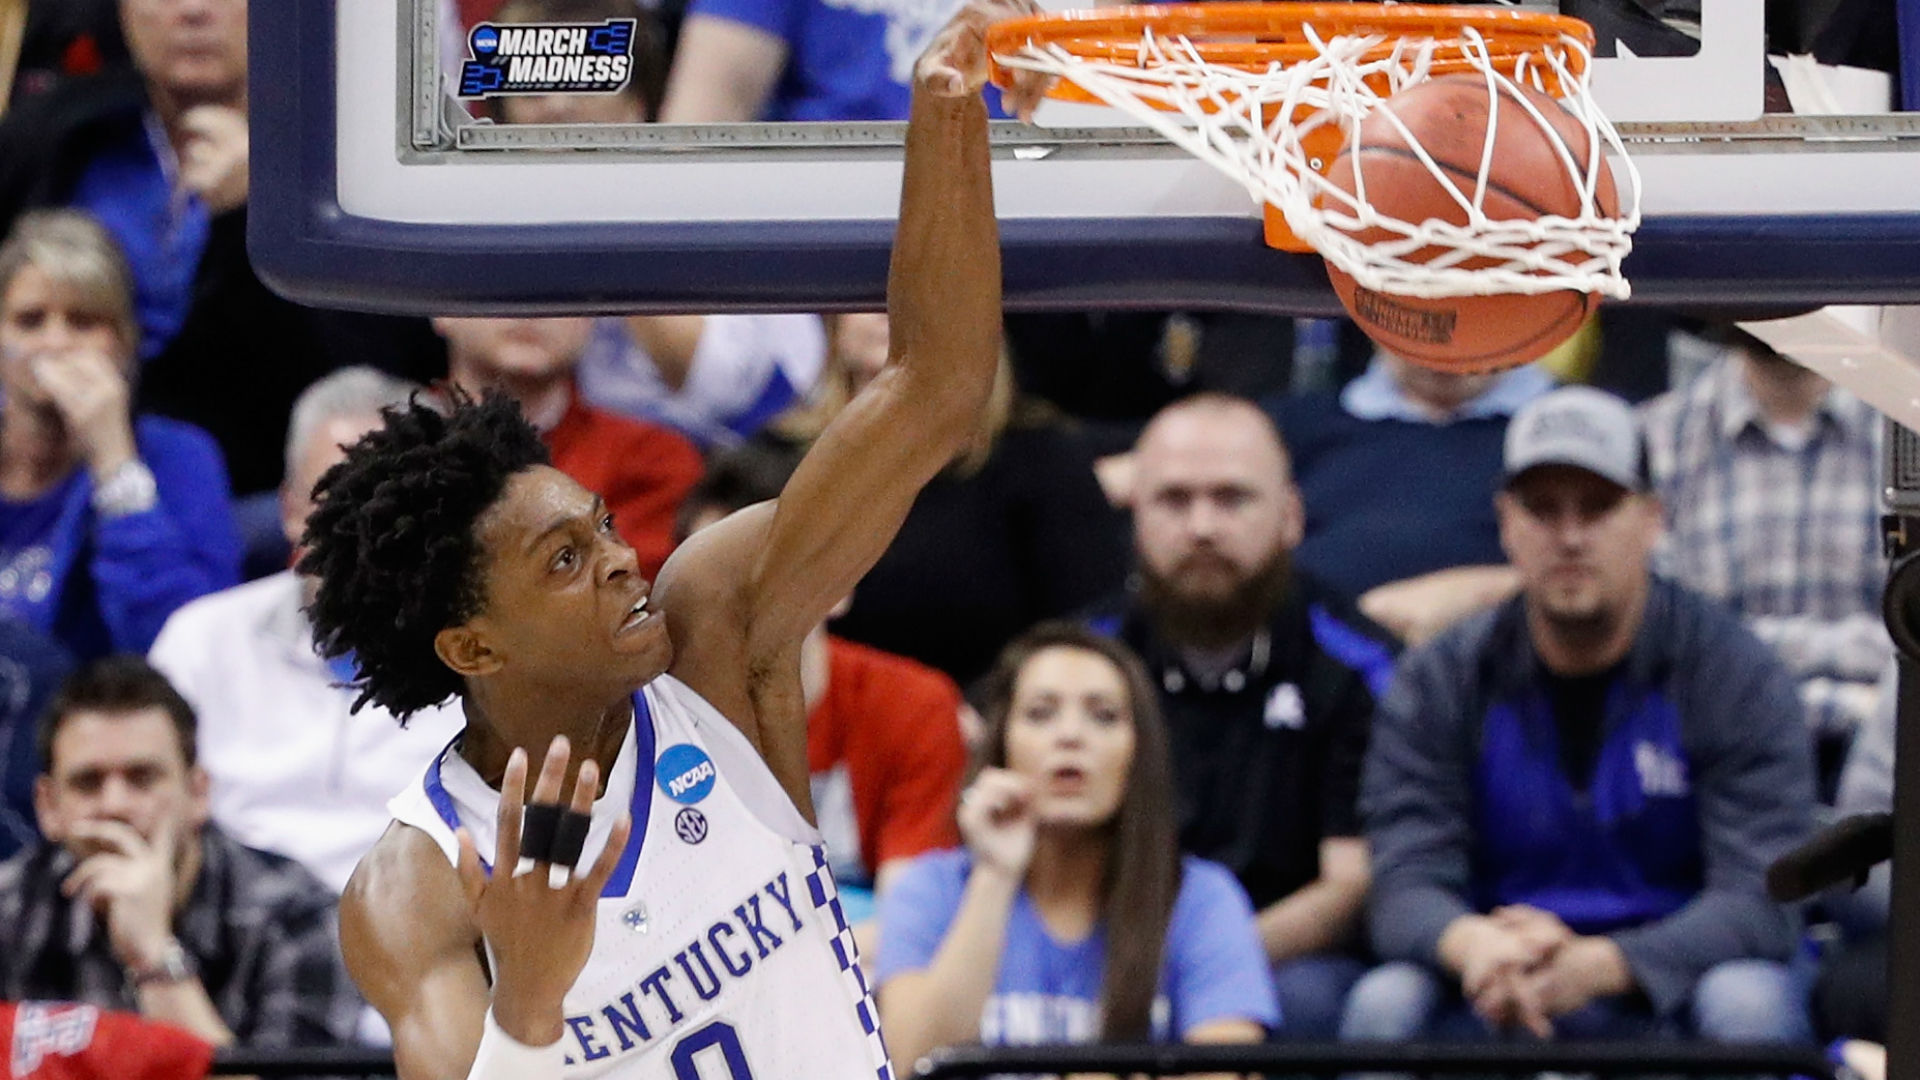 North Carolina beats Kentucky in insane fashion: Twitter reacts